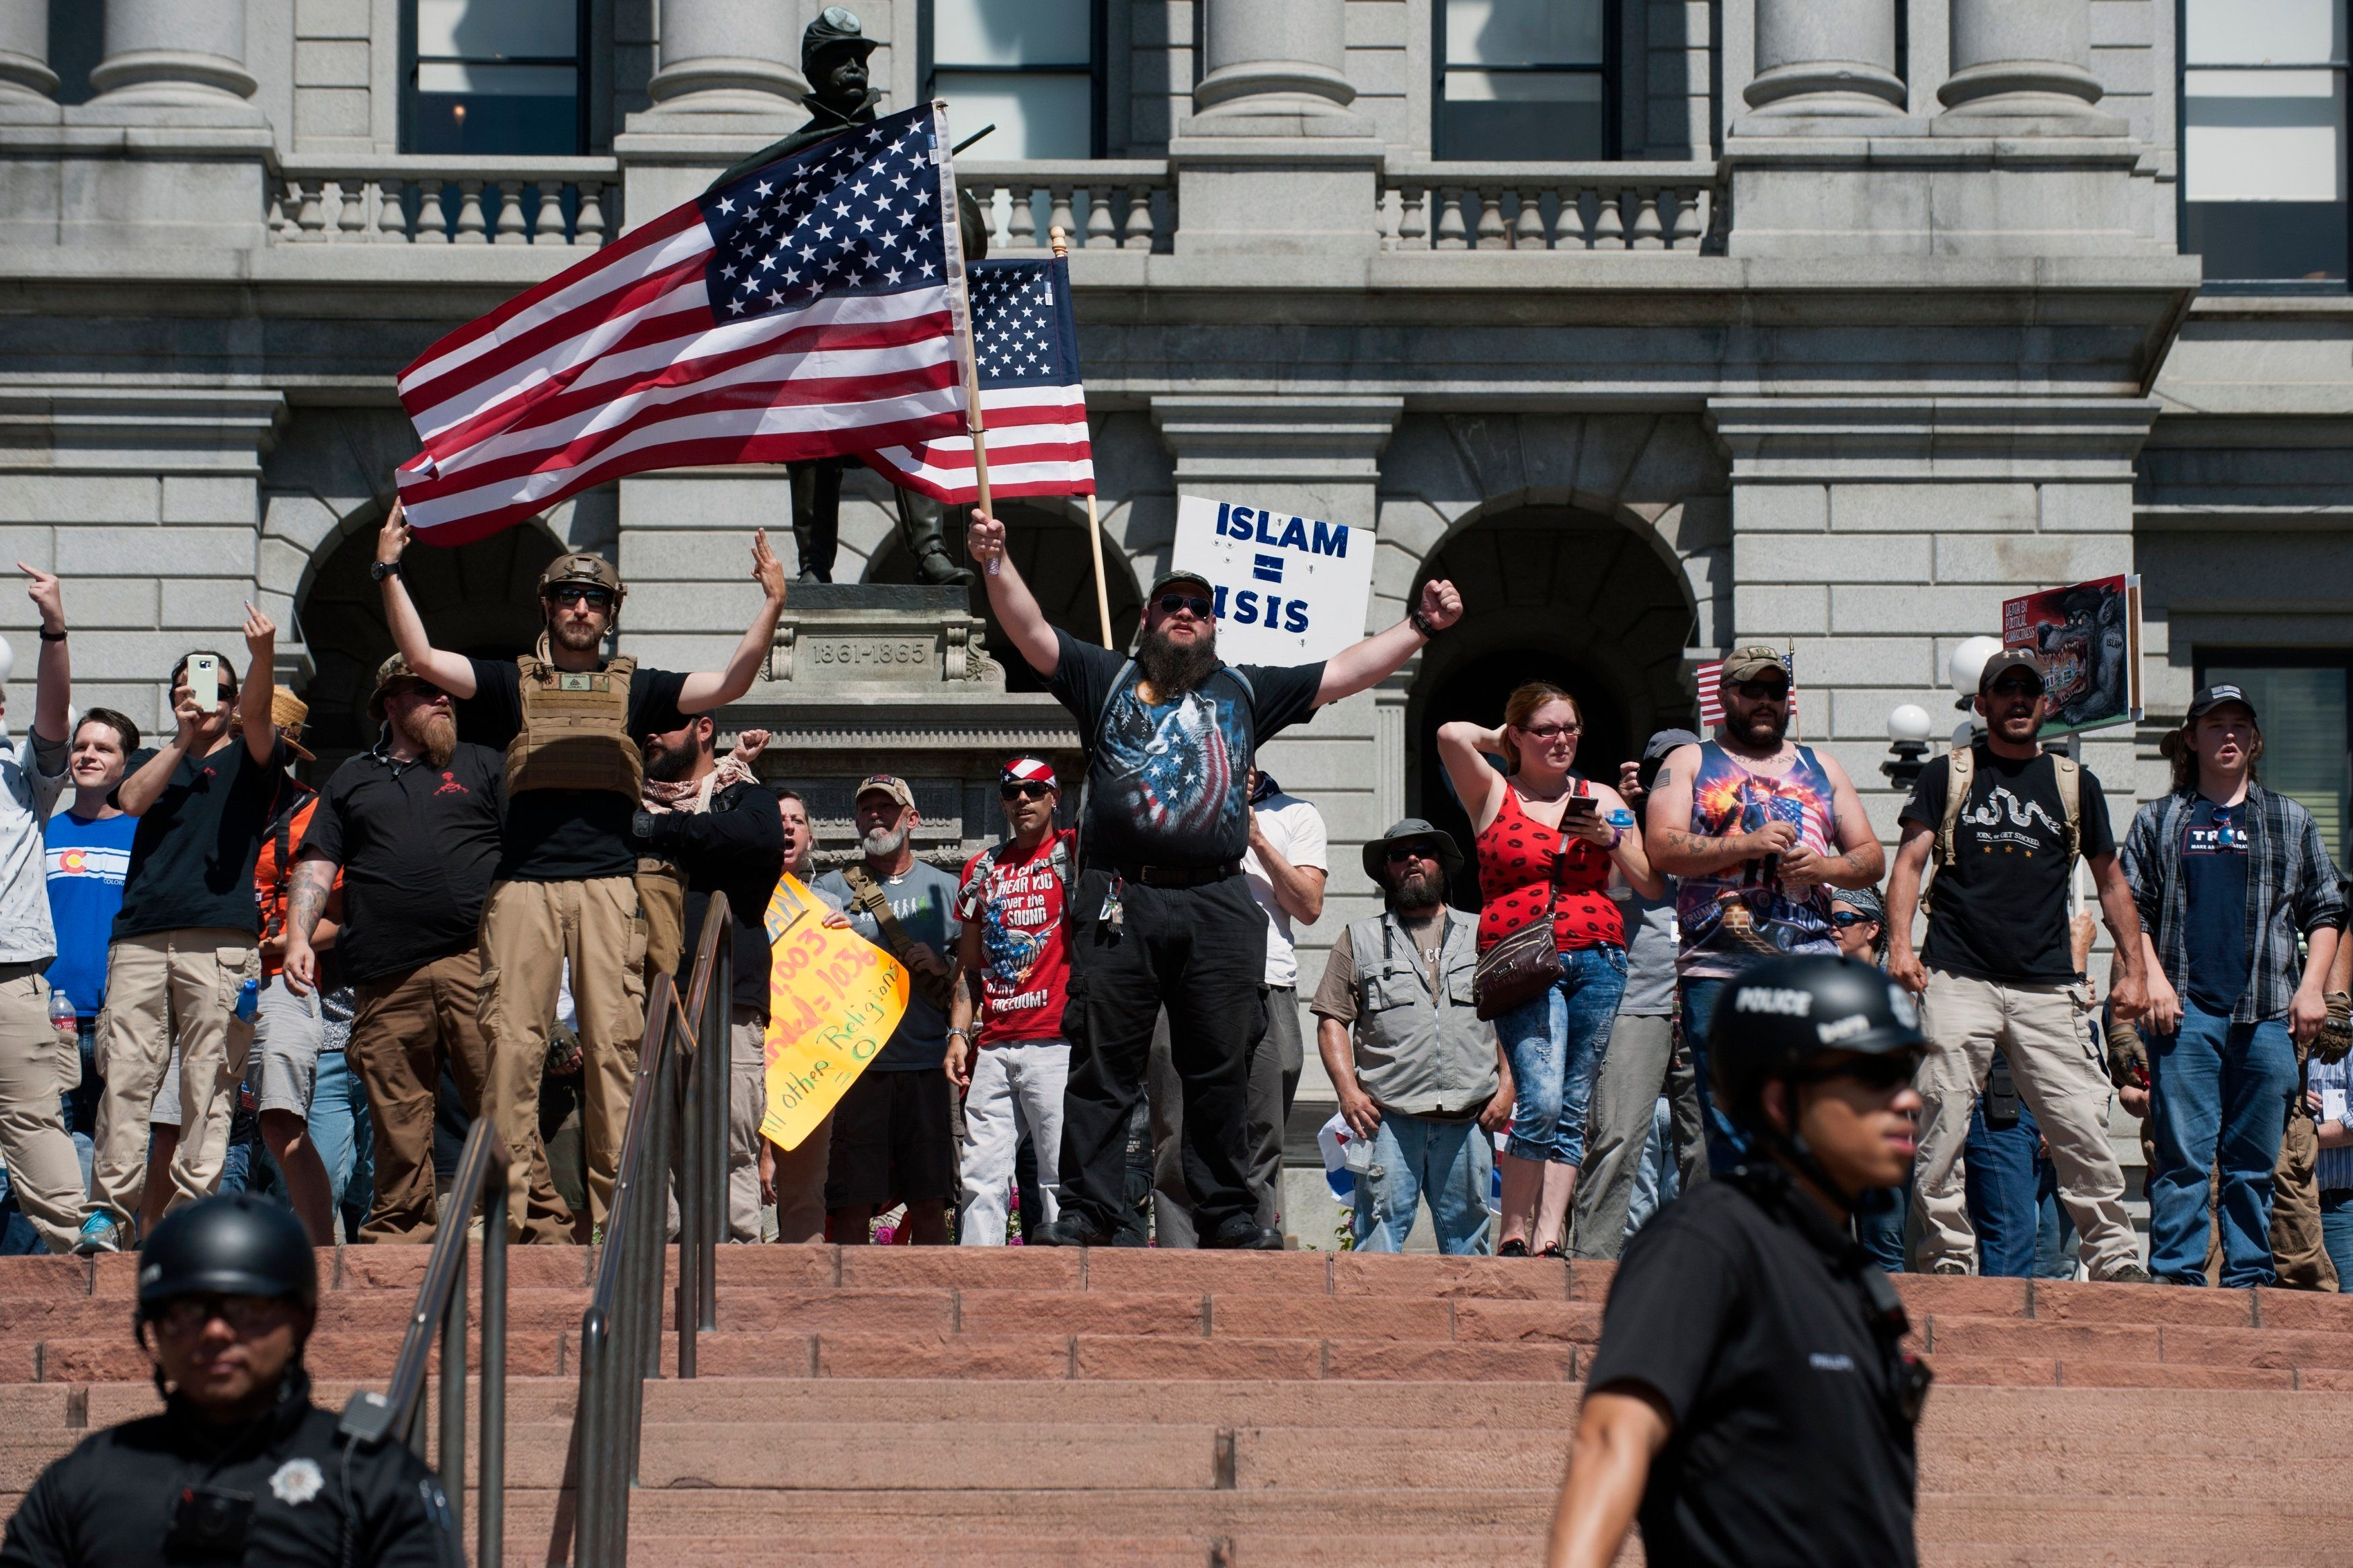 Right-wing demonstrators taunt counter-demonstrators during the Denver March Against Sharia Law in Denver, Colorado on June 10, 2017. The march was supported by two right-wing groups, The Proud Boys, and Bikers Against Radical Islam. Police kept the counter protestors separated during the rally which was held in front of the Colorado State Capital. The march was one of many held throughout the U.S. opposing Sharia law, and was viewed by many as promoting both Islamophobia and racism. / AFP PHOTO / Jason Connolly        (Photo credit should read JASON CONNOLLY/AFP/Getty Images)